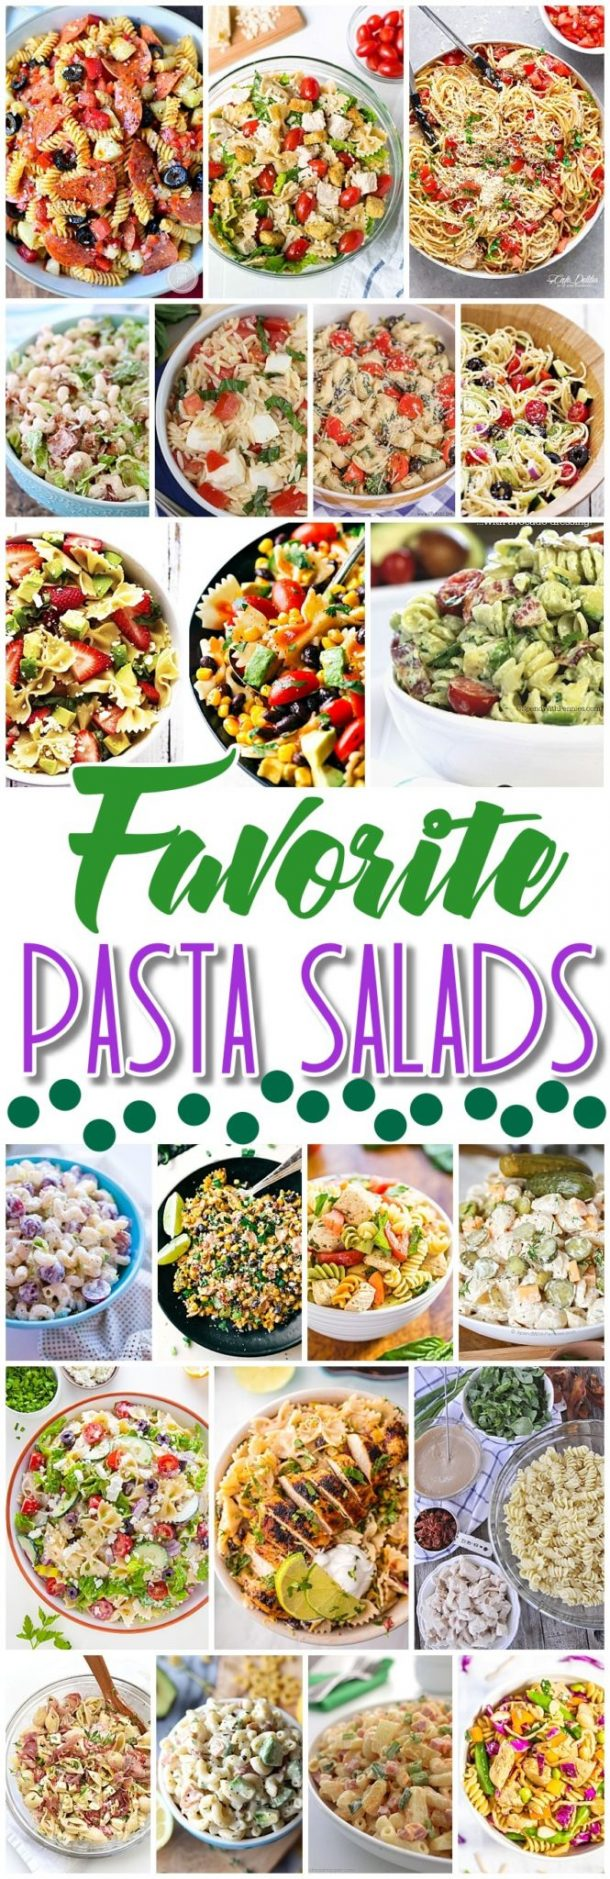 Easy pasta recipes for groups